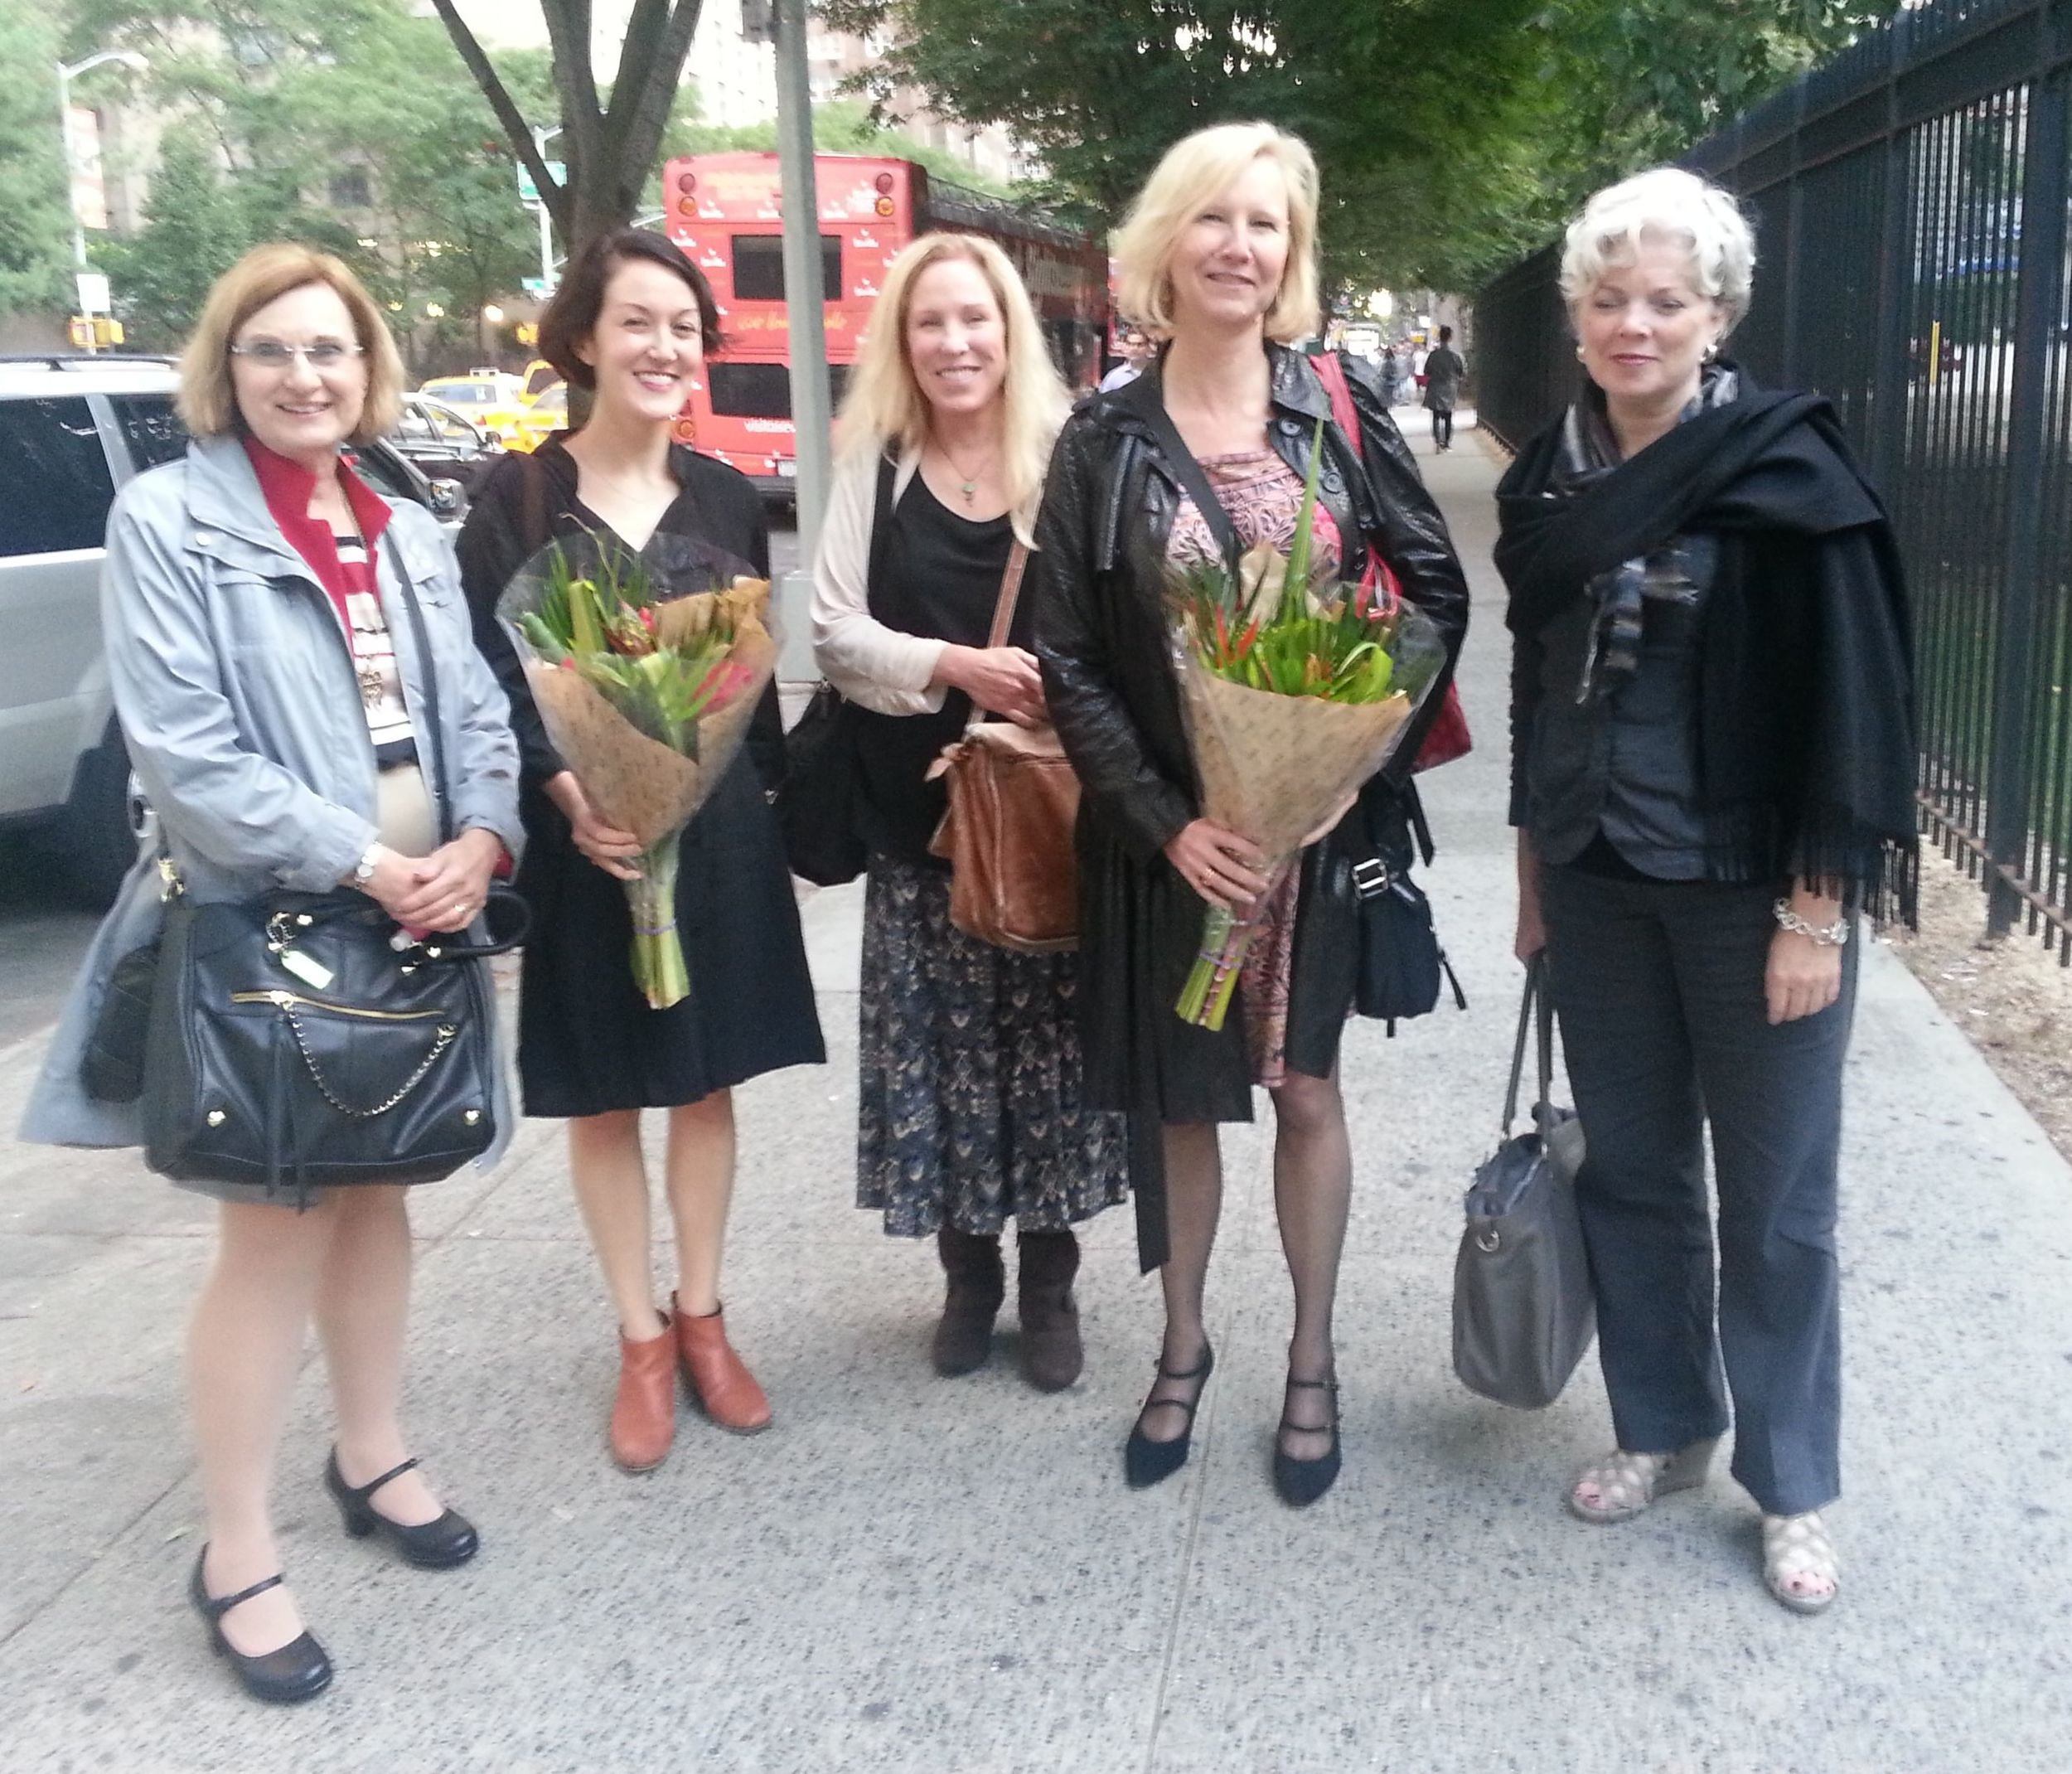 Sharon Marie Carnicke, Shonni Enelow, Cynthia Baron, Mary Luckhurst, and  Rose Malague